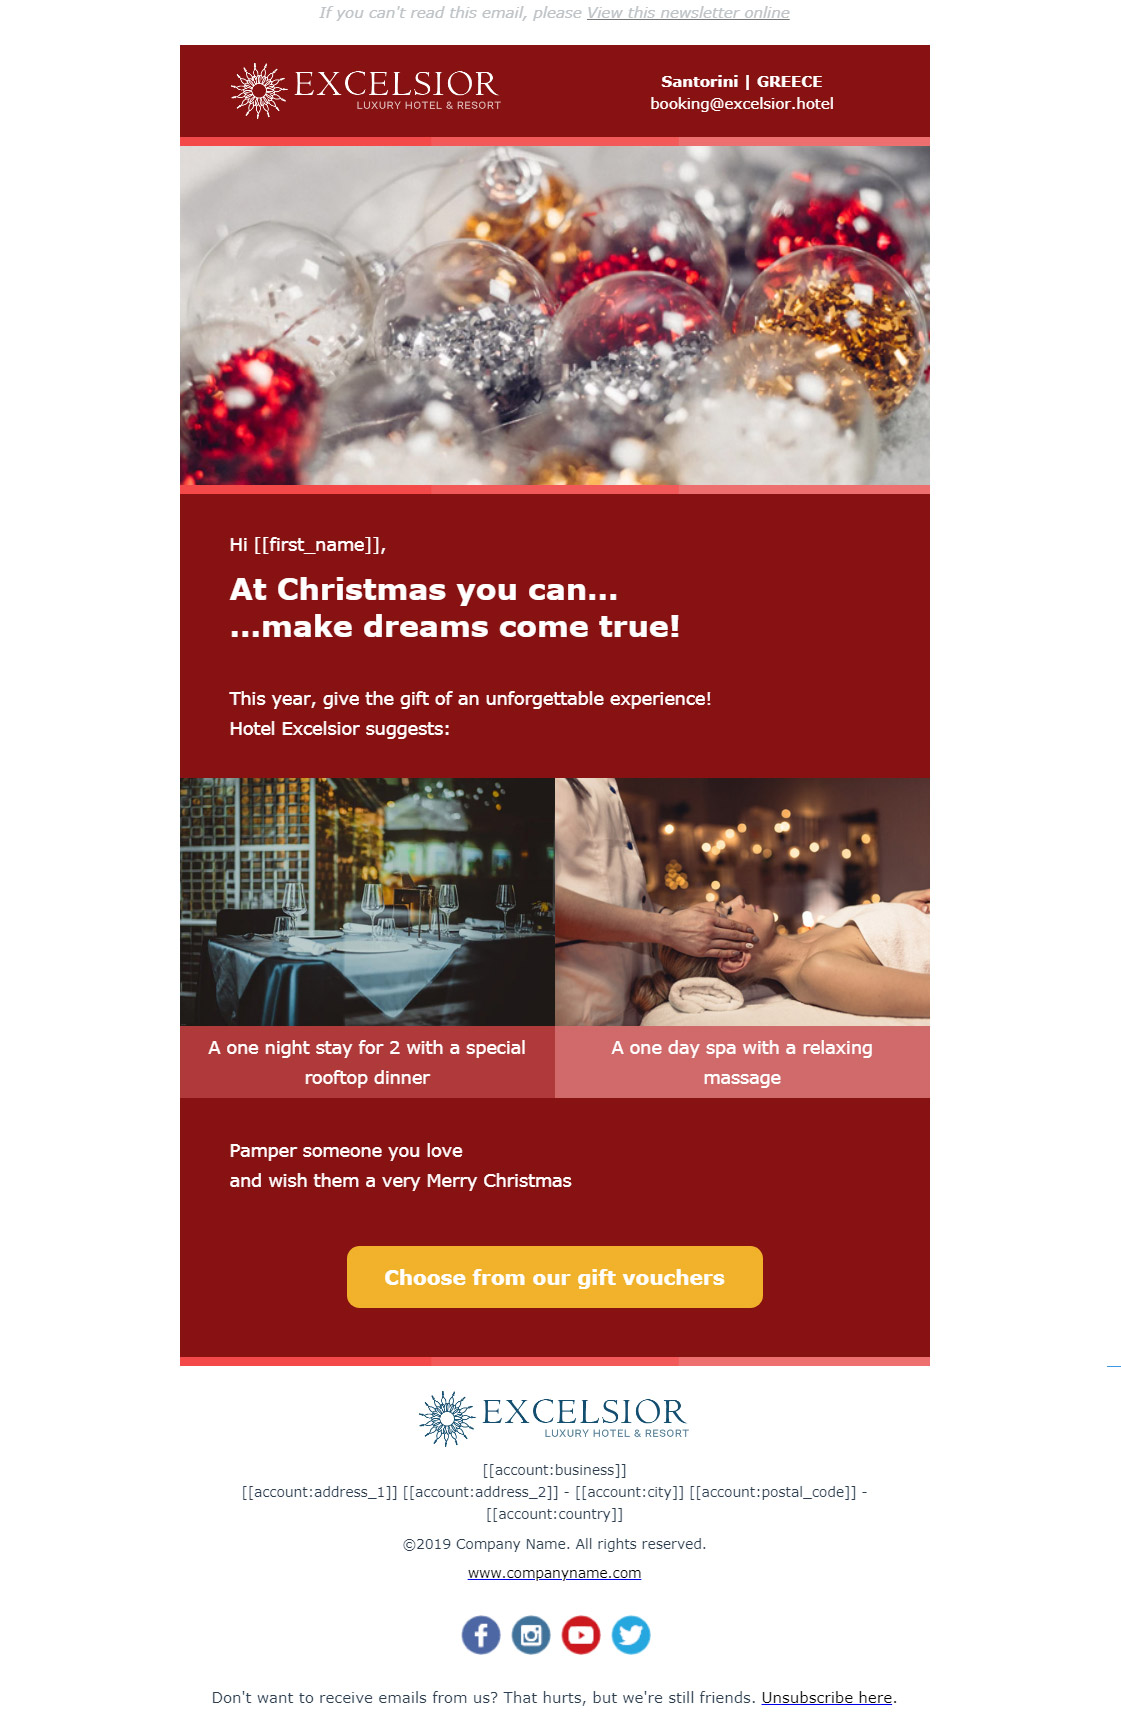 Hotel newsletter example - Christmas gifts